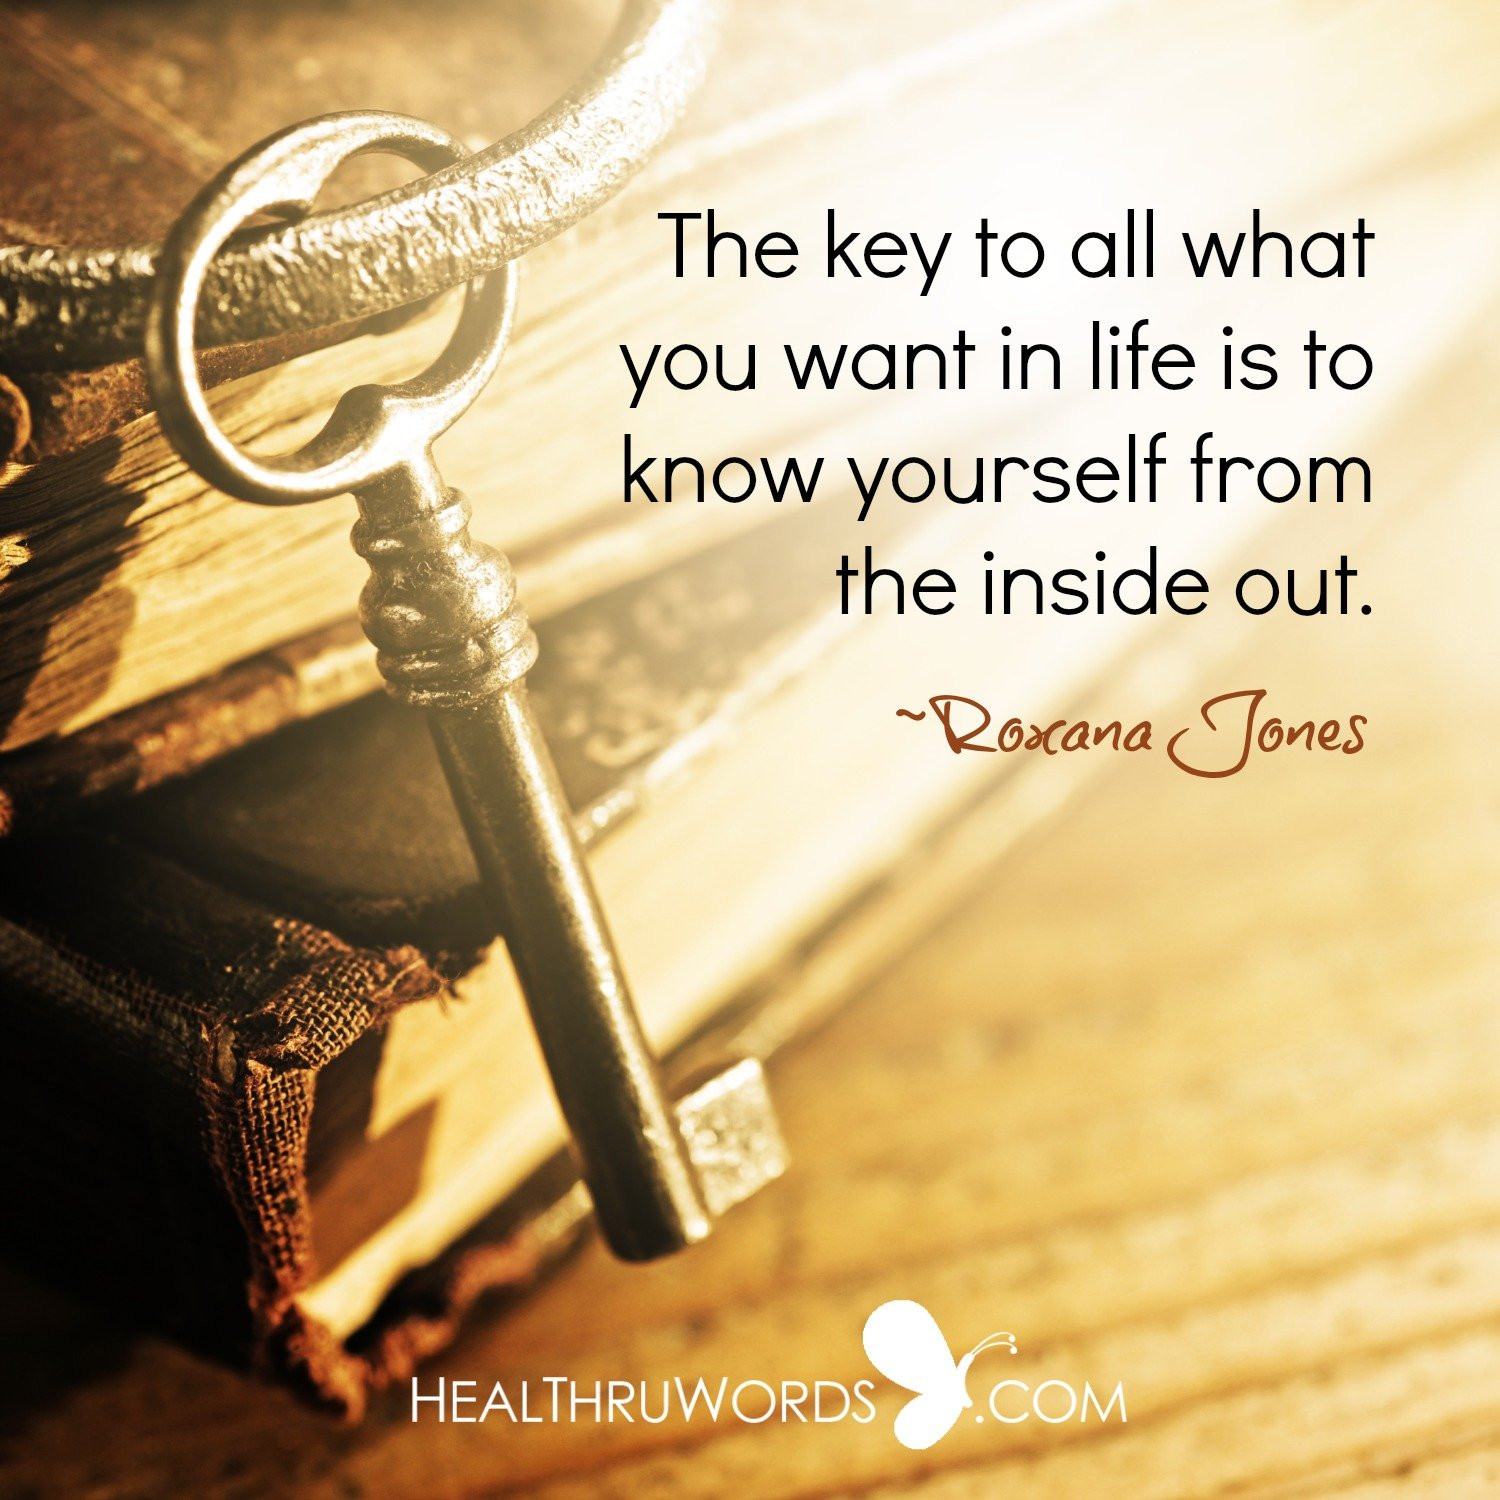 Inspirational Image: The Key to your Wishes